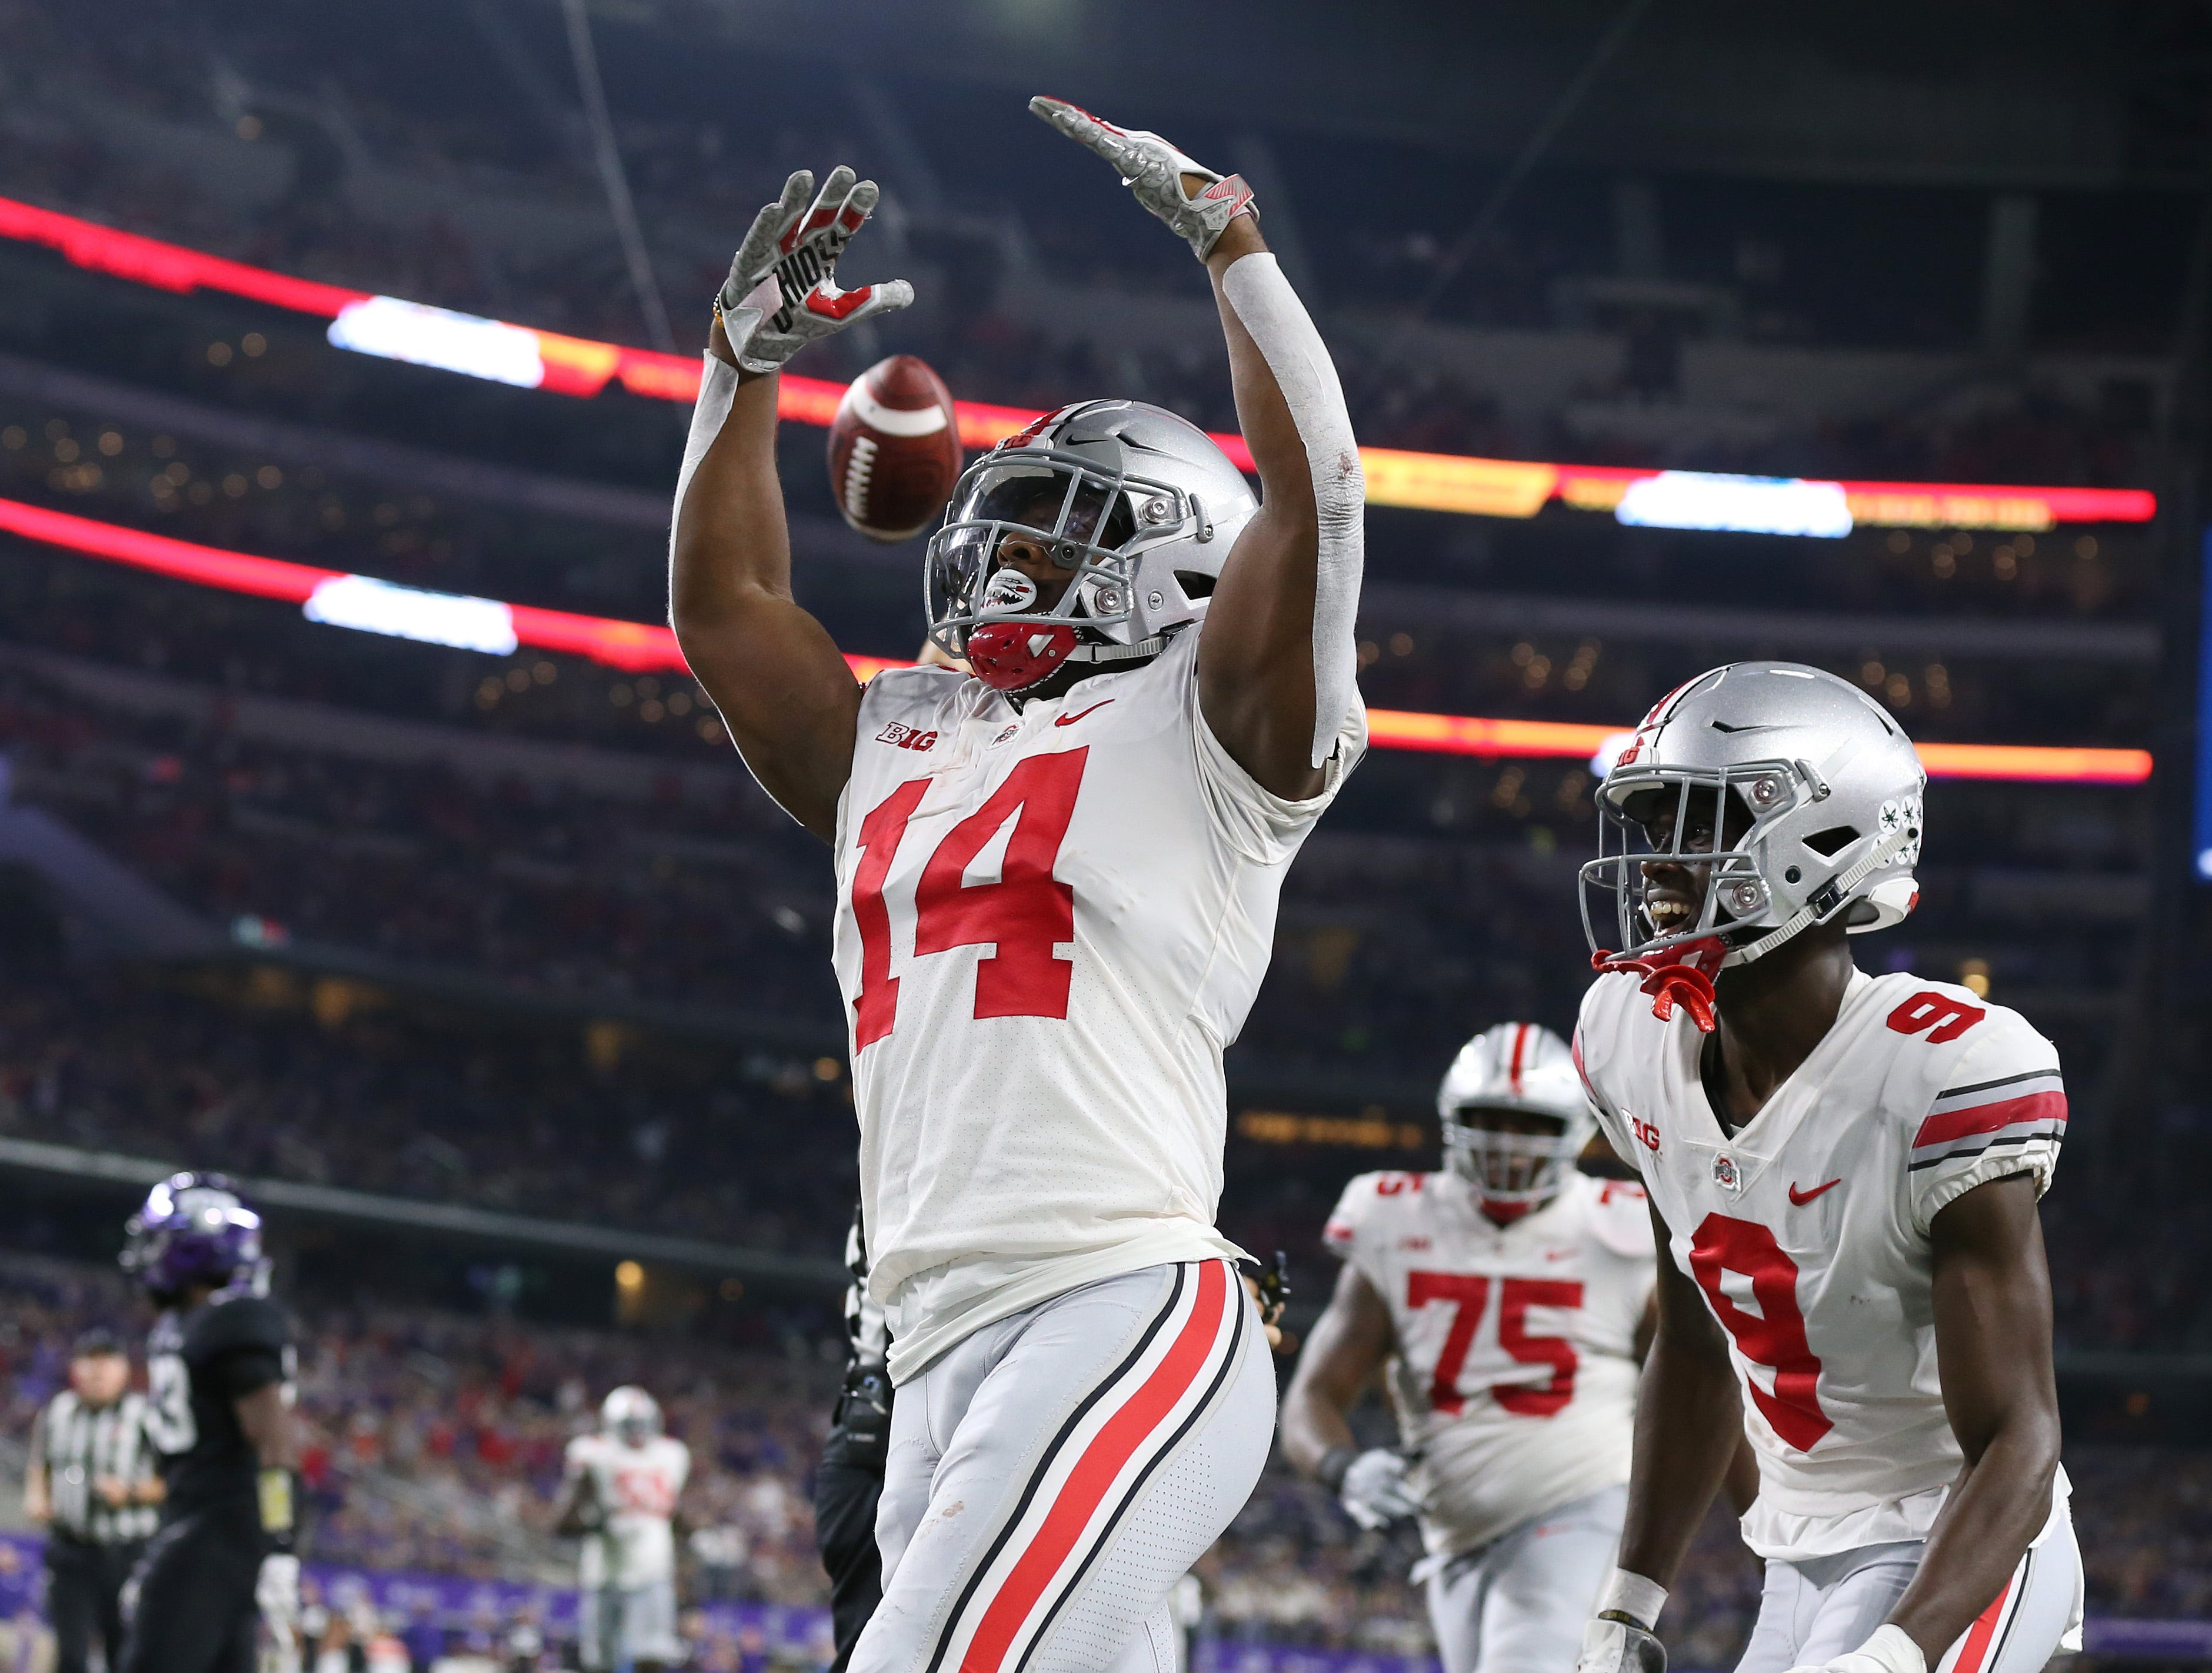 Ohio State Buckeyes halfback K.J. Hill Jr. (14) celebrates his third-quarter touchdown with receiver Binjimen Victor (9) against the Texas Christian Horned Frogs at AT&T Stadium.